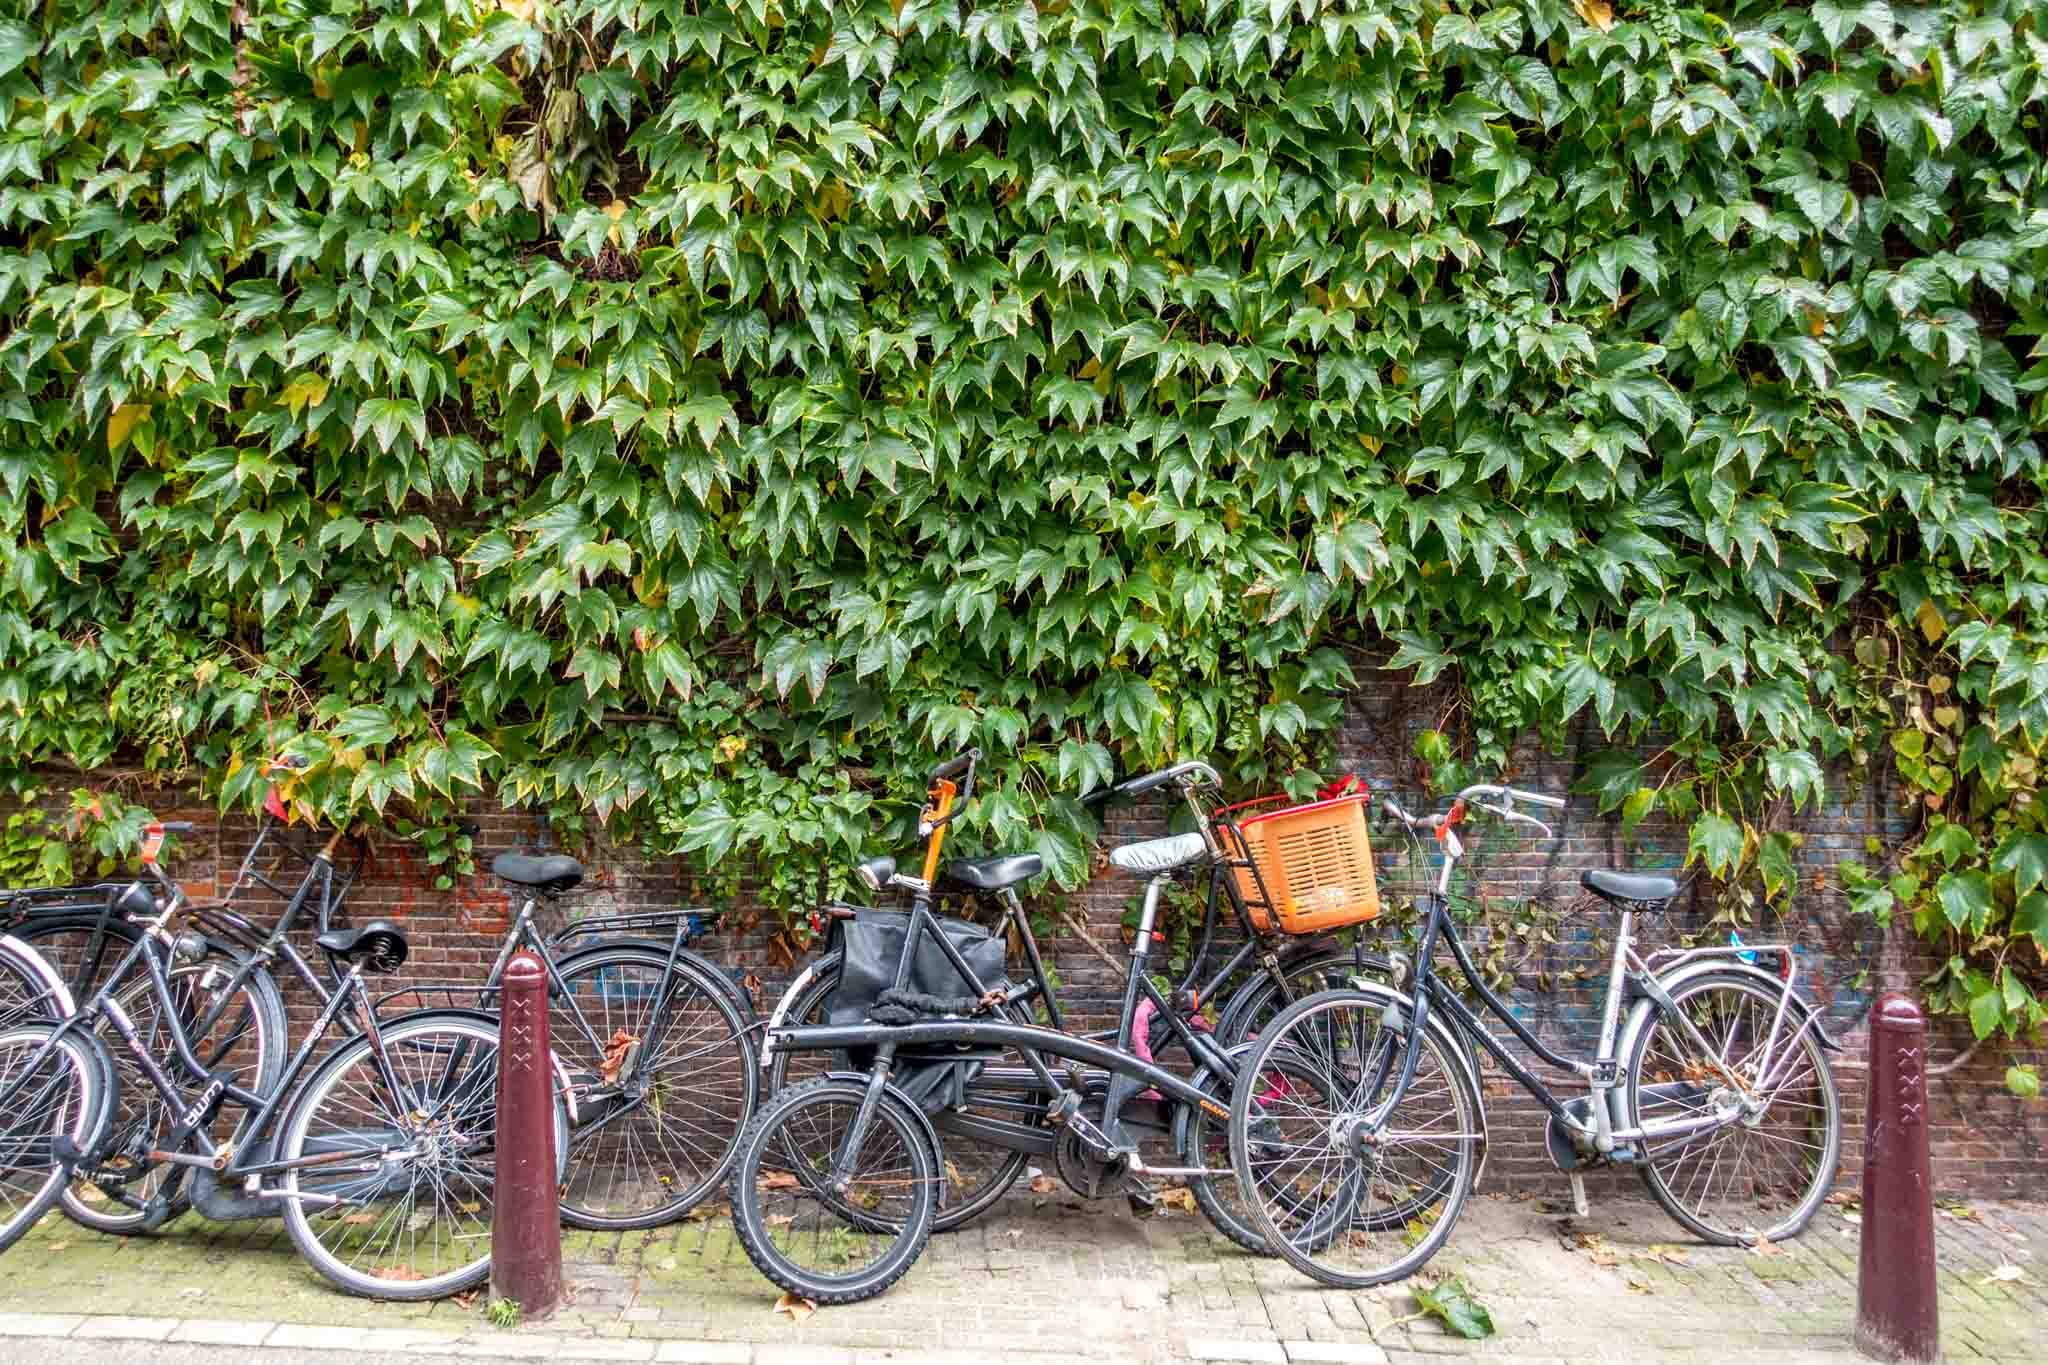 Bikes leaned up against the wall